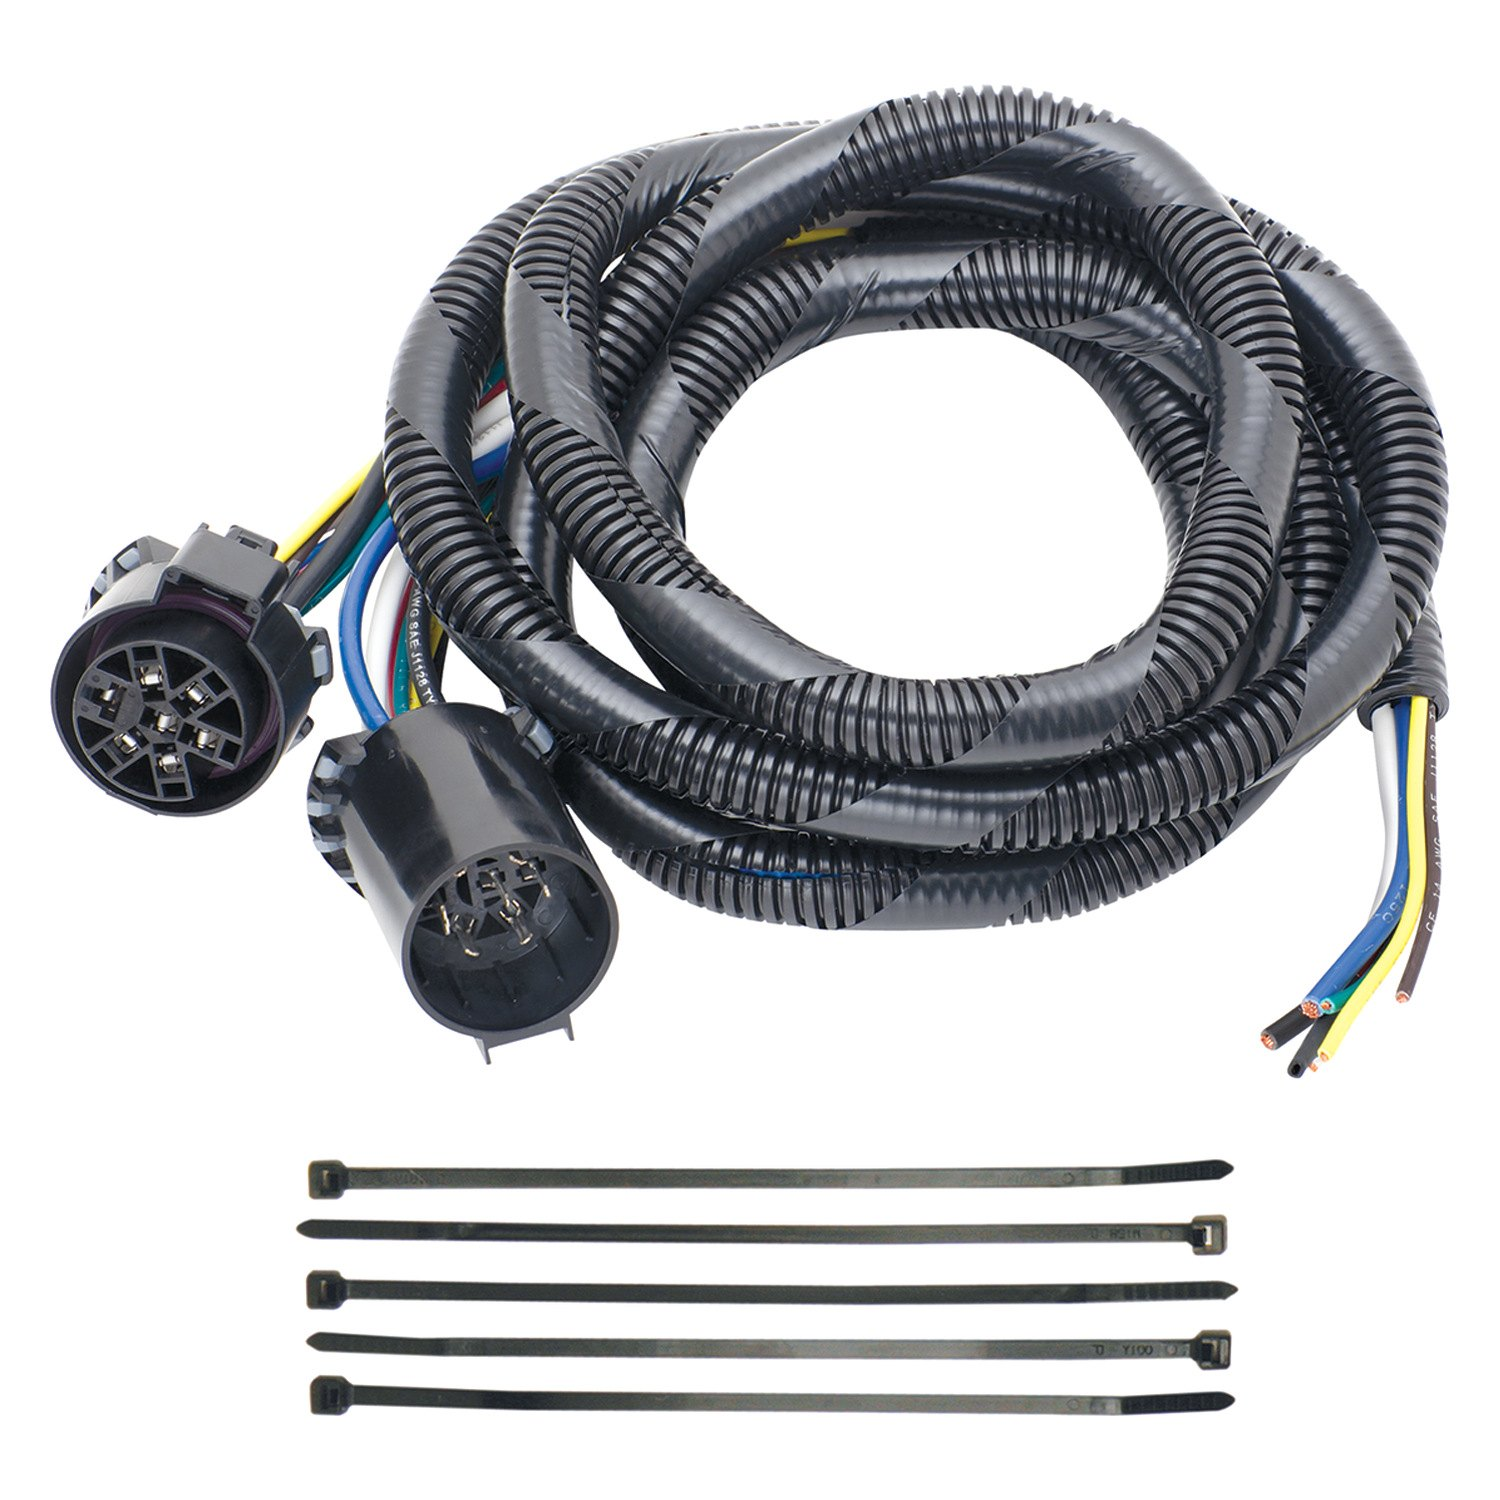 tow ready ford f 150 2014 2016 5th wheel adapter harness. Black Bedroom Furniture Sets. Home Design Ideas